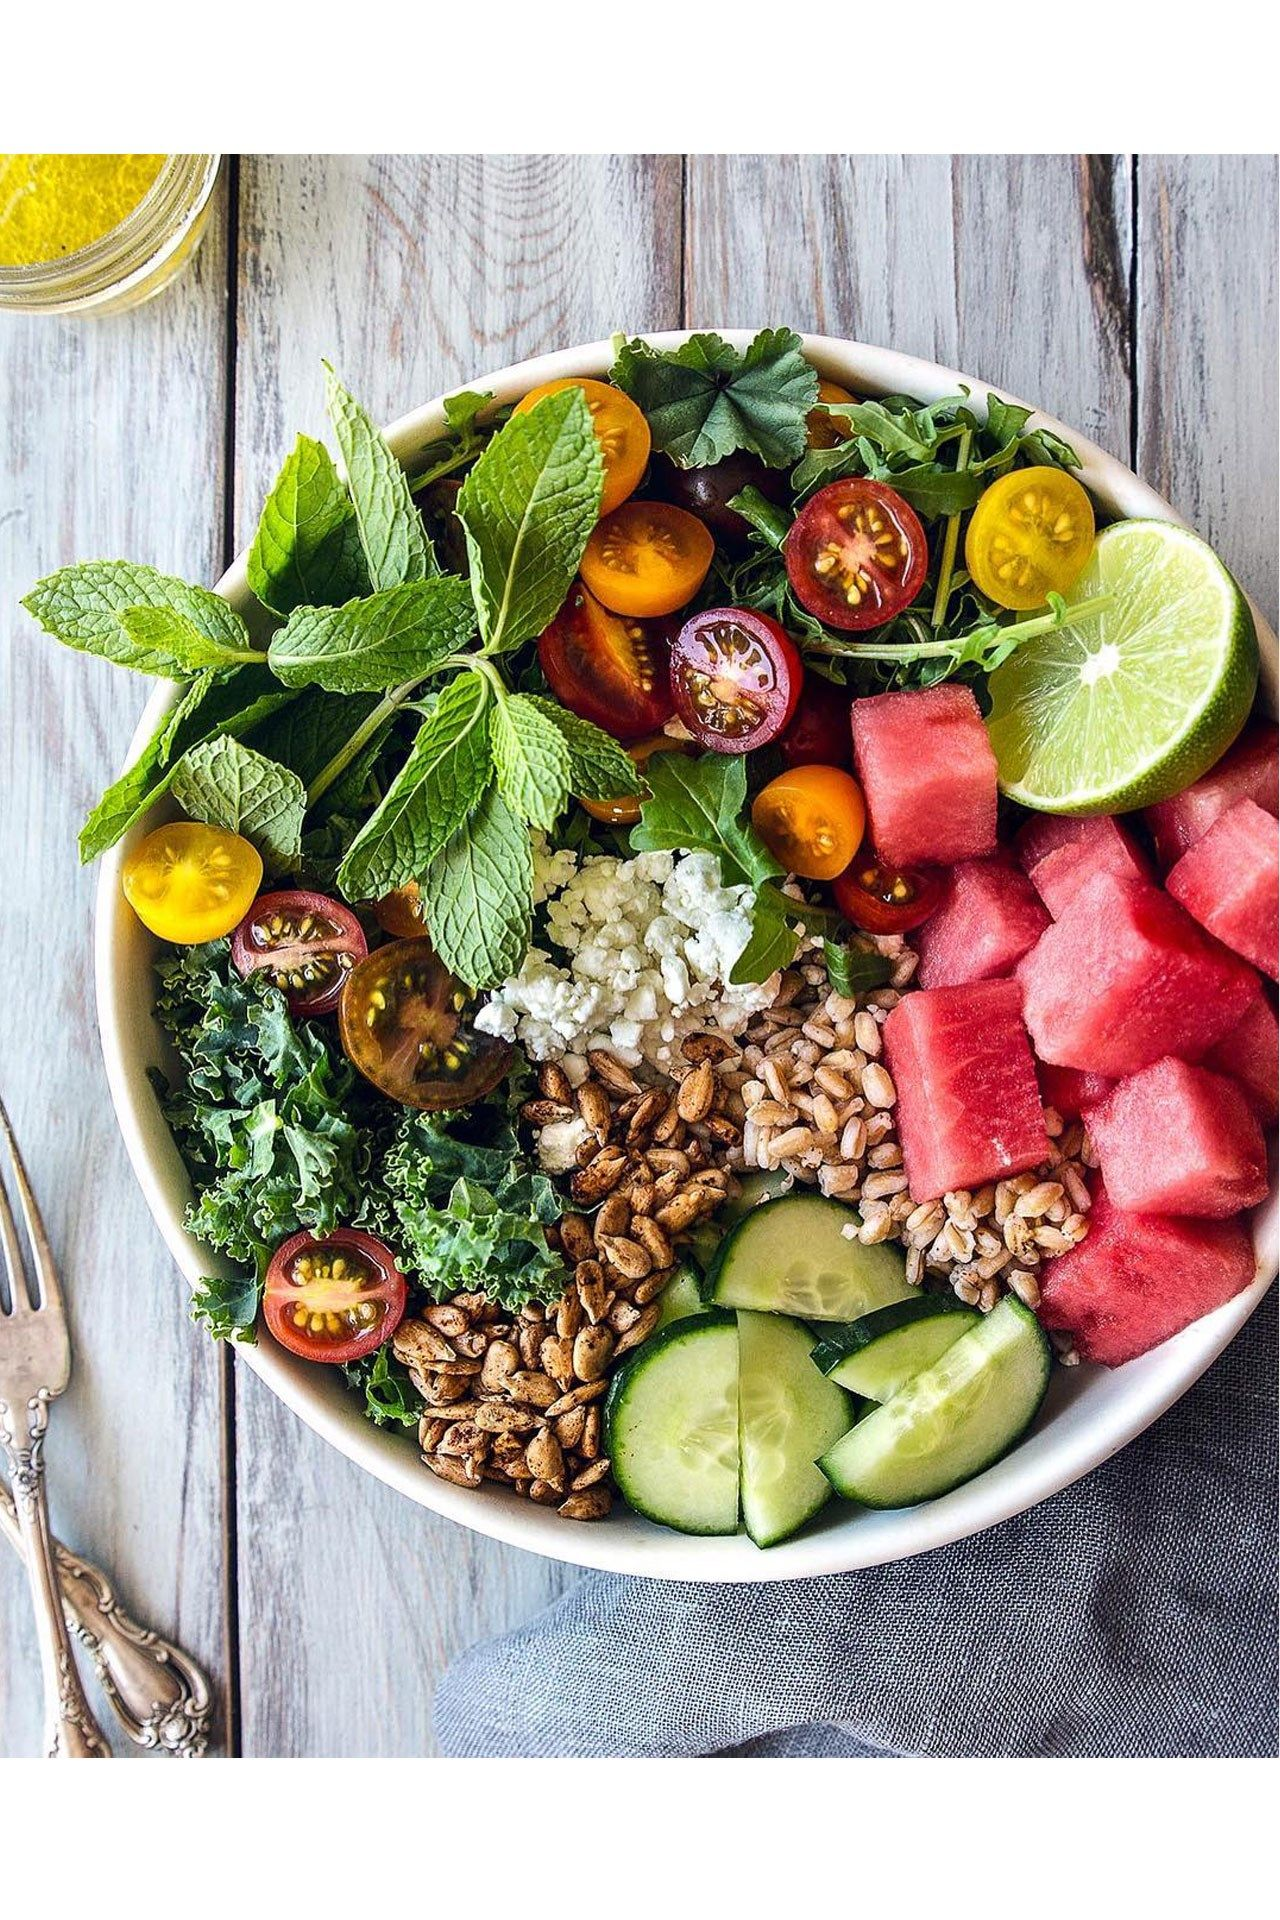 The best healthy eating instagram accounts instagram food and the best healthy eating instagram accounts forumfinder Image collections